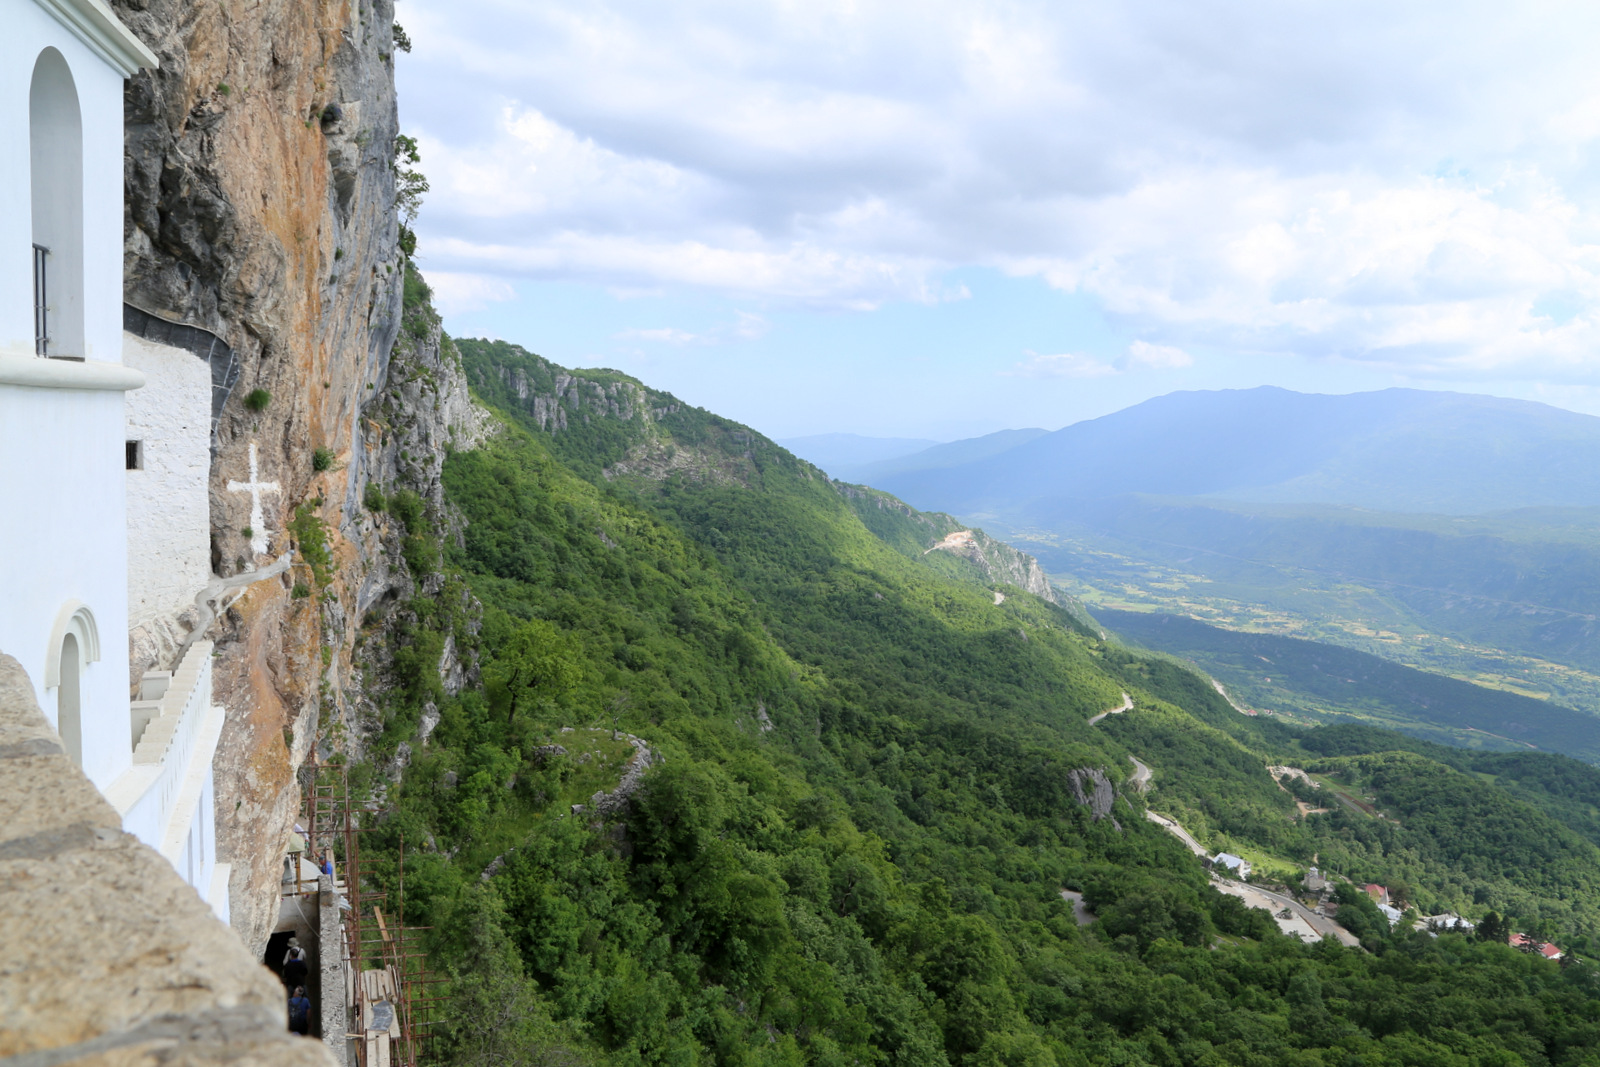 Views from the top balcony at Ostrog monastery